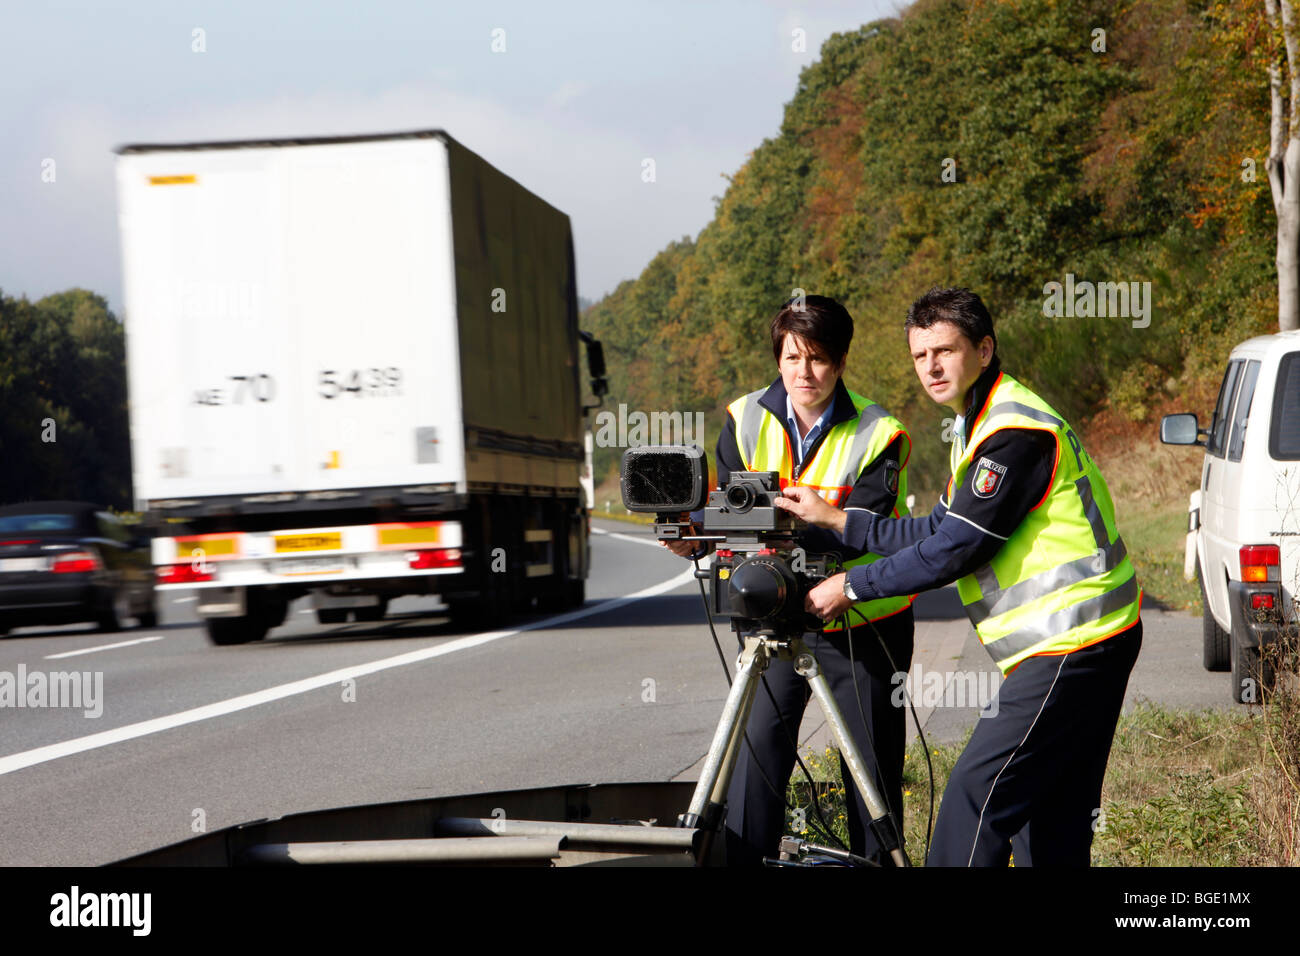 Bge My Account >> highway police with a radar, speed limit enforcement at a German Stock Photo, Royalty Free Image ...